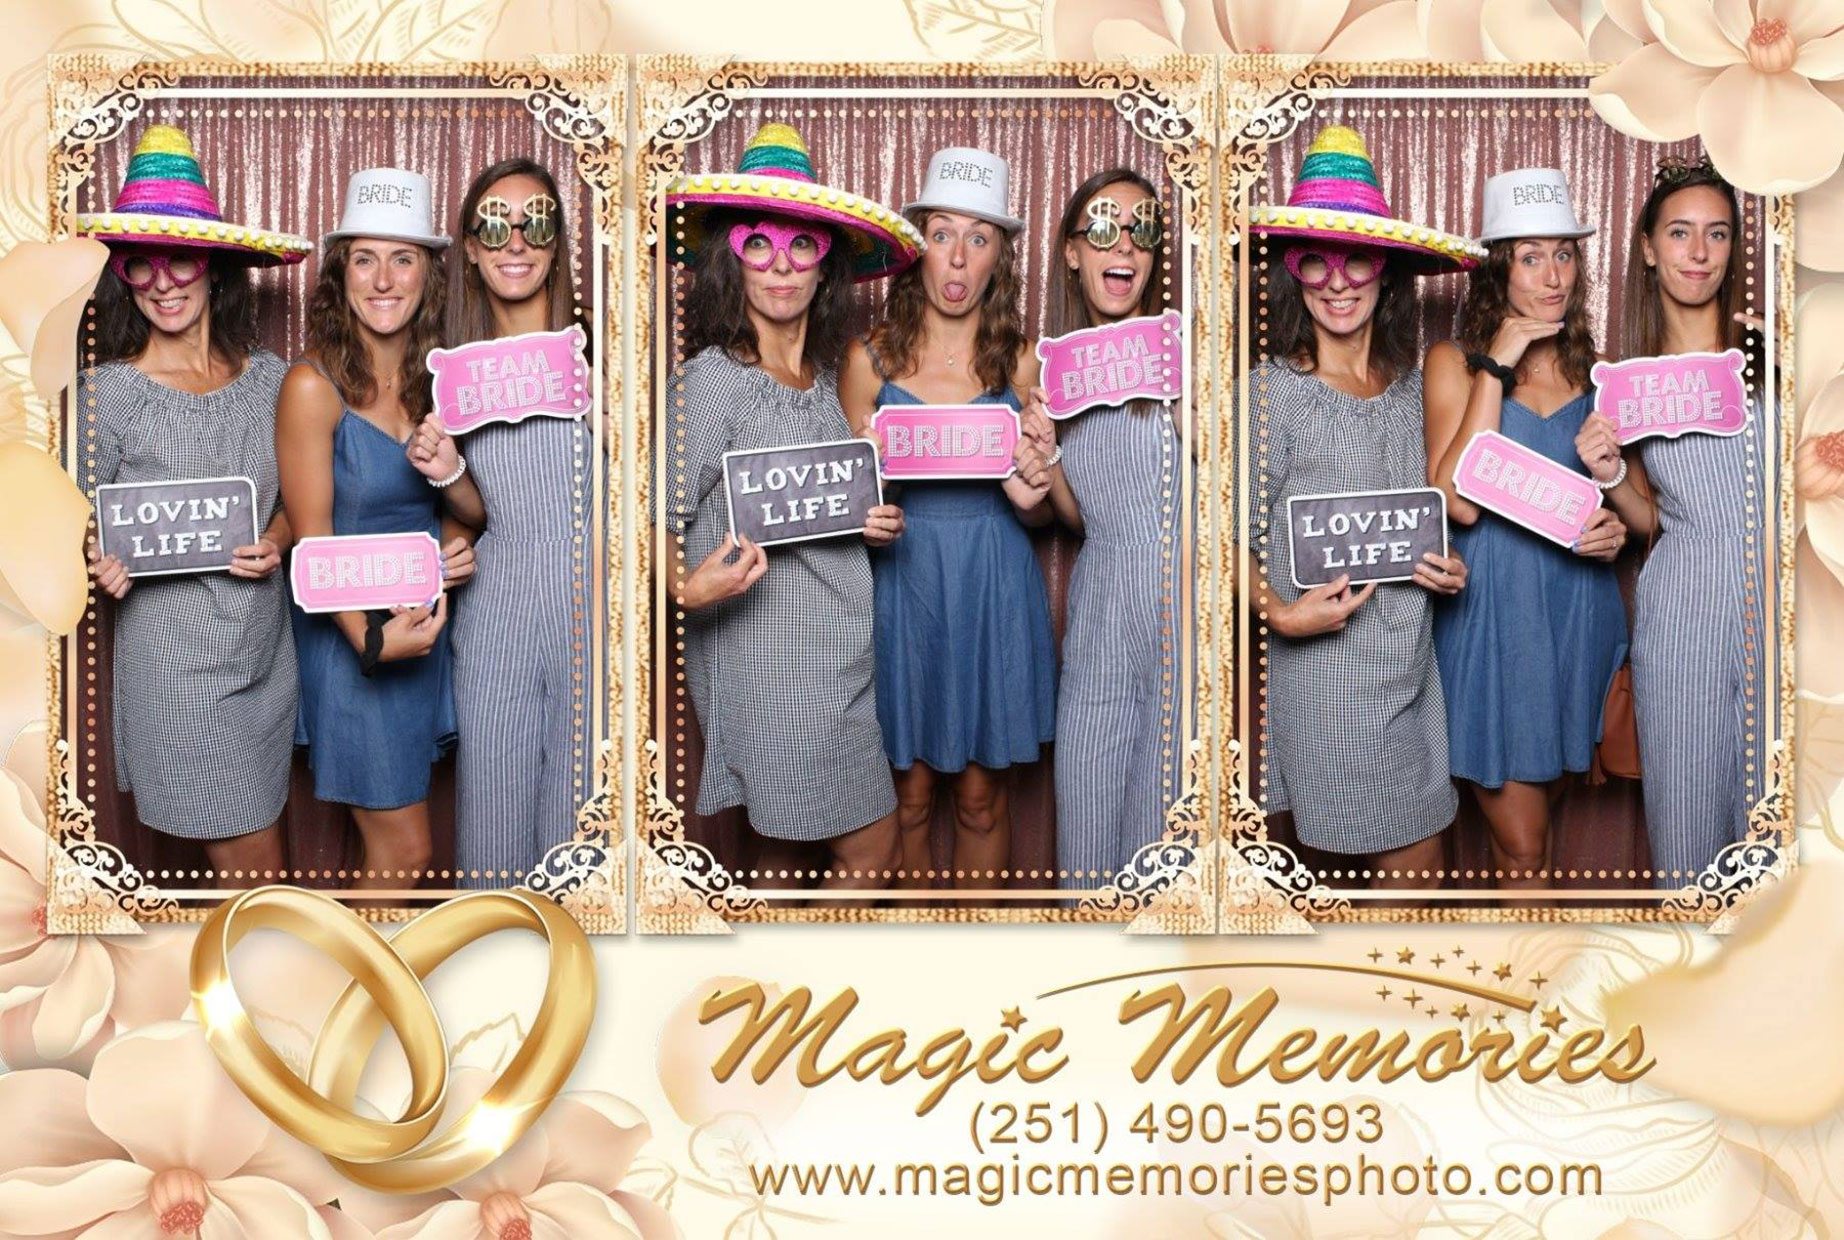 Bridal show photo booth